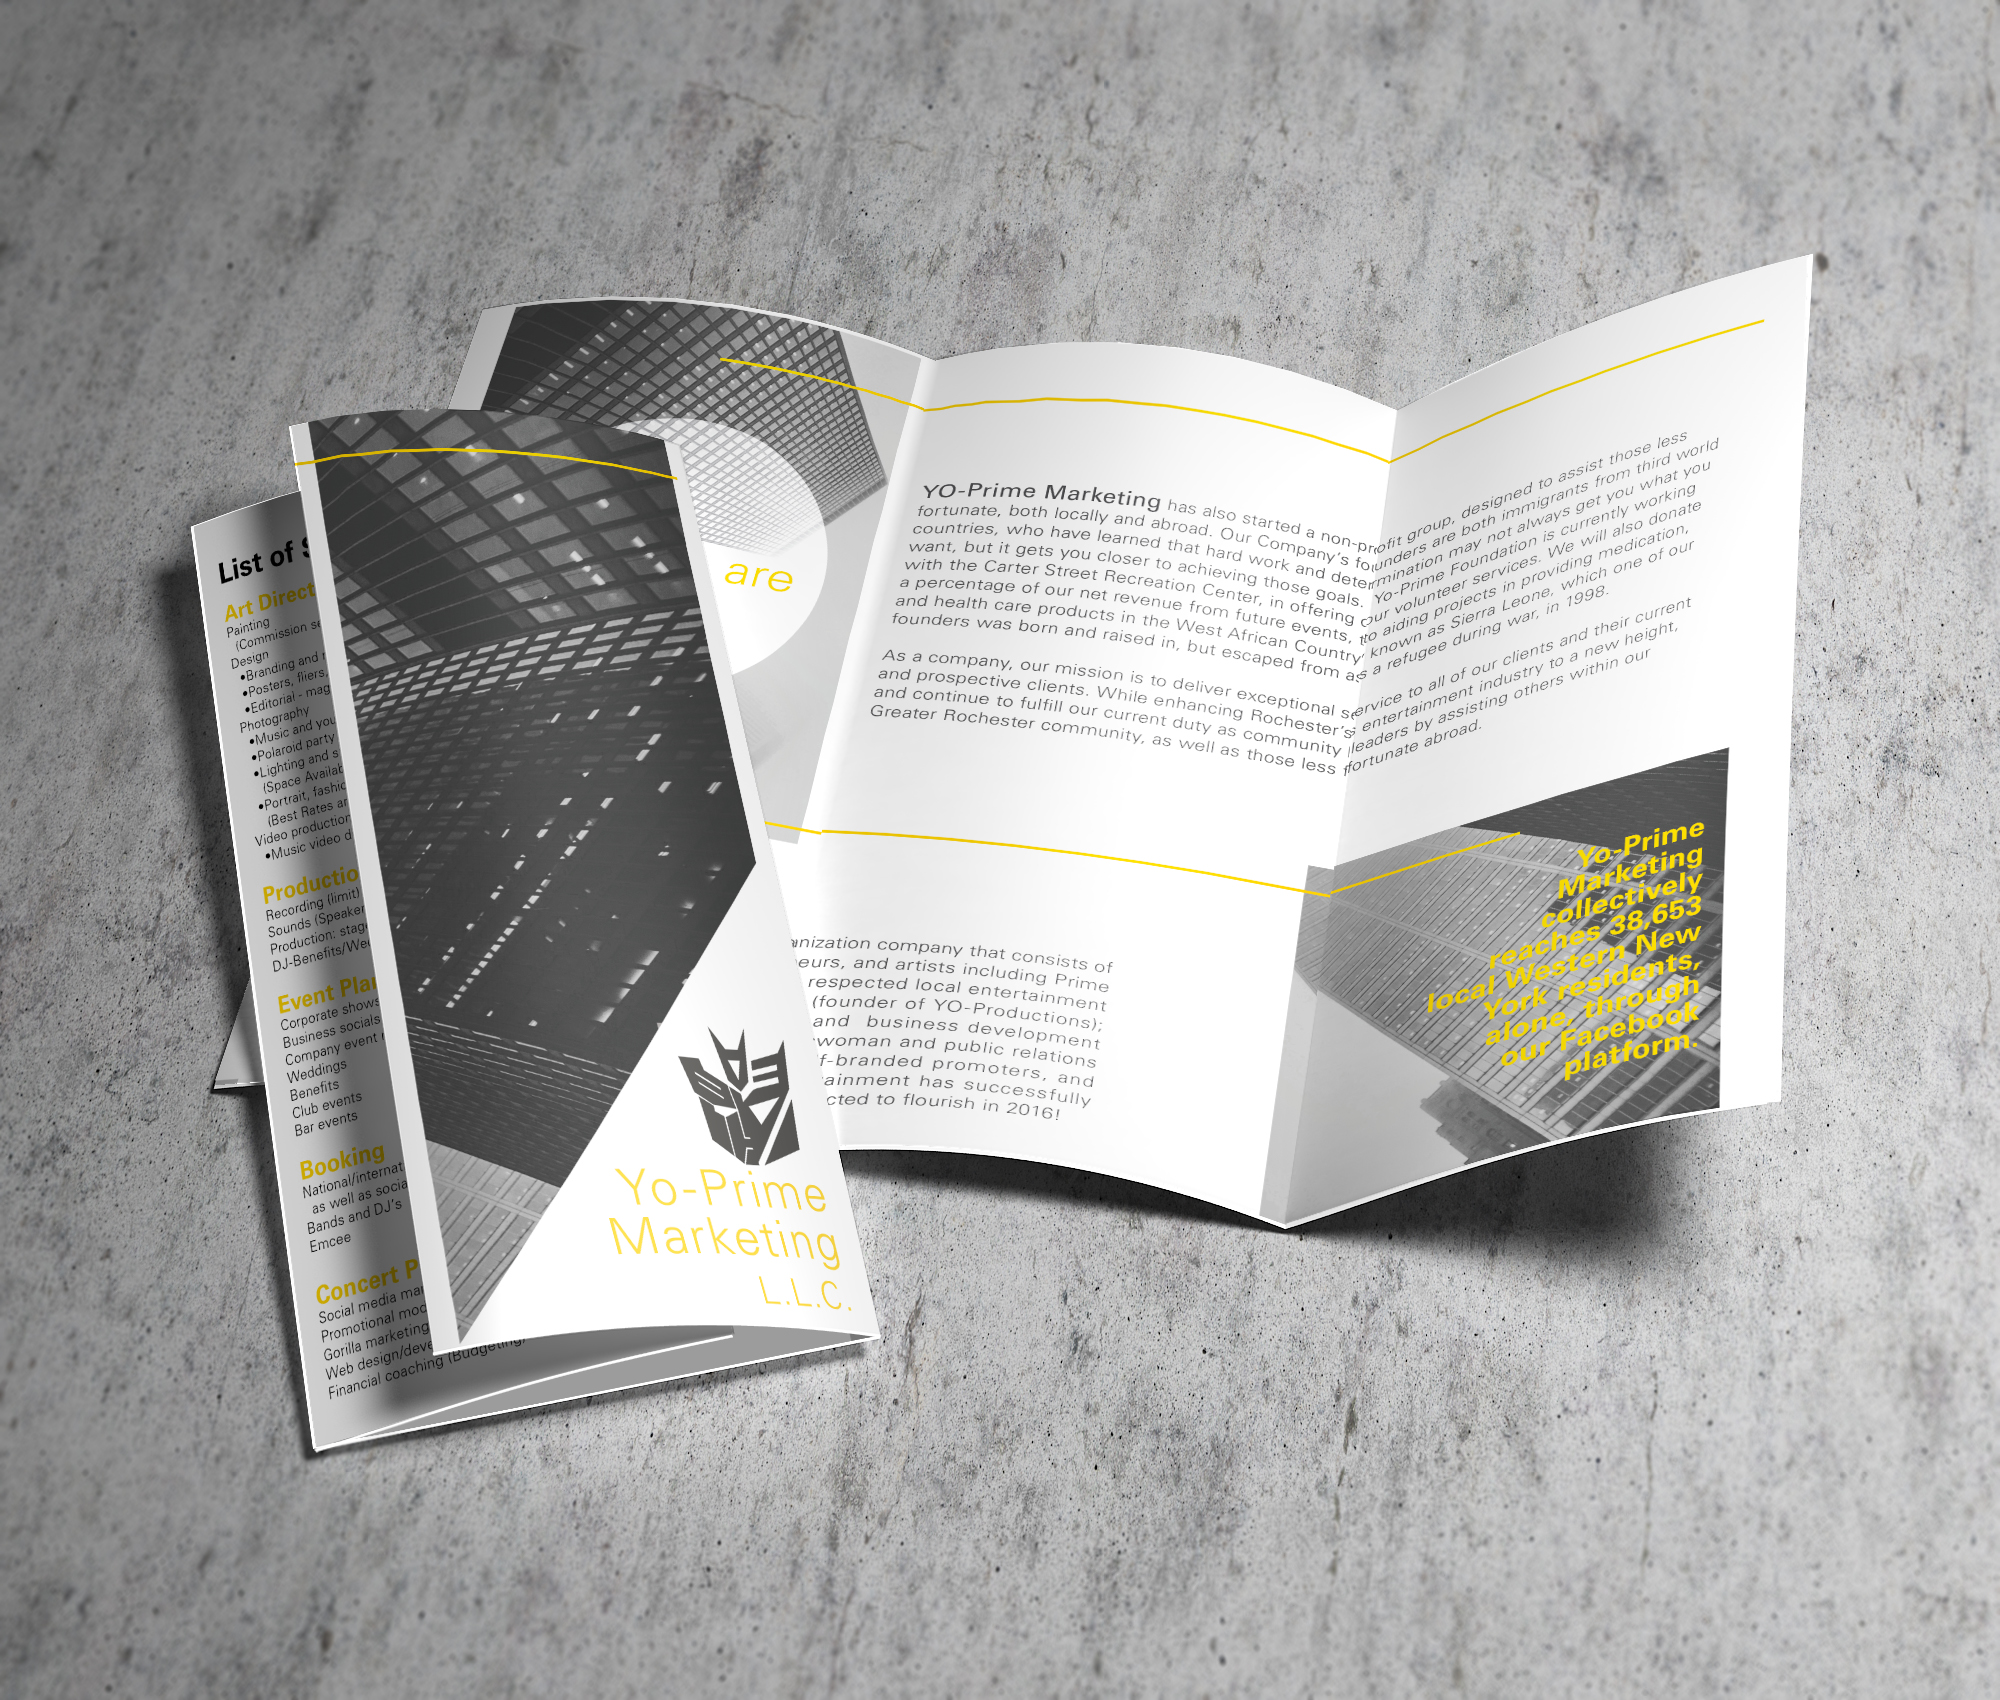 Logo redesign and creation of pamphlet of services offered for a marketing company based in Rochester, NY